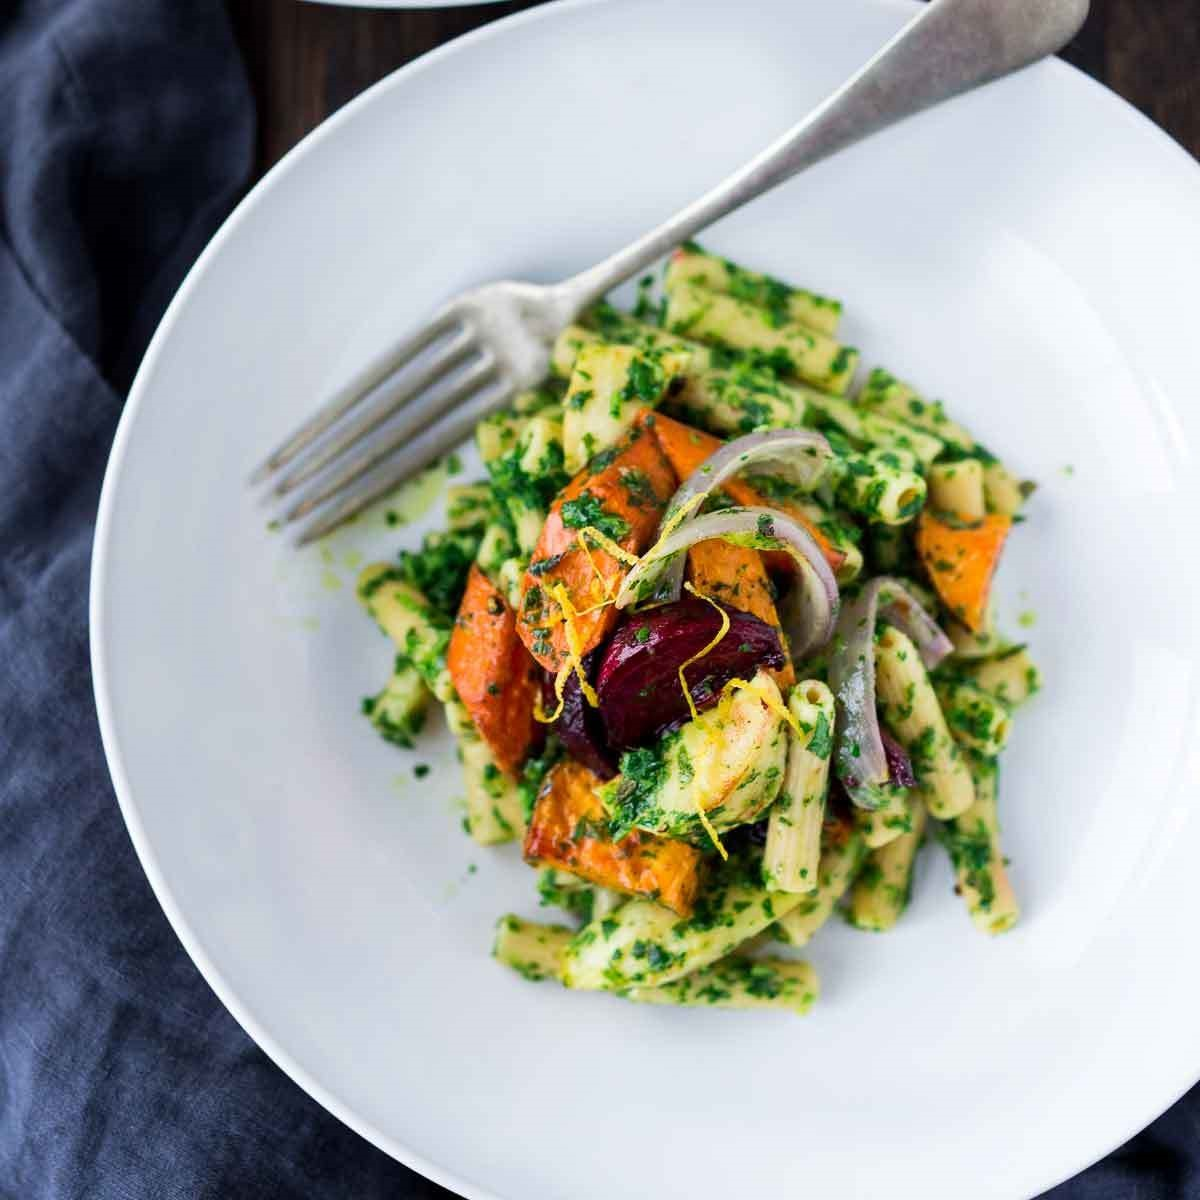 We love using chickpea pasta in this quick and easy dinner recipe, but other bean pastas or whole-wheat noodles are just as good with this fresh and zesty pesto sauce. Source: EatingWell.com, April 2017